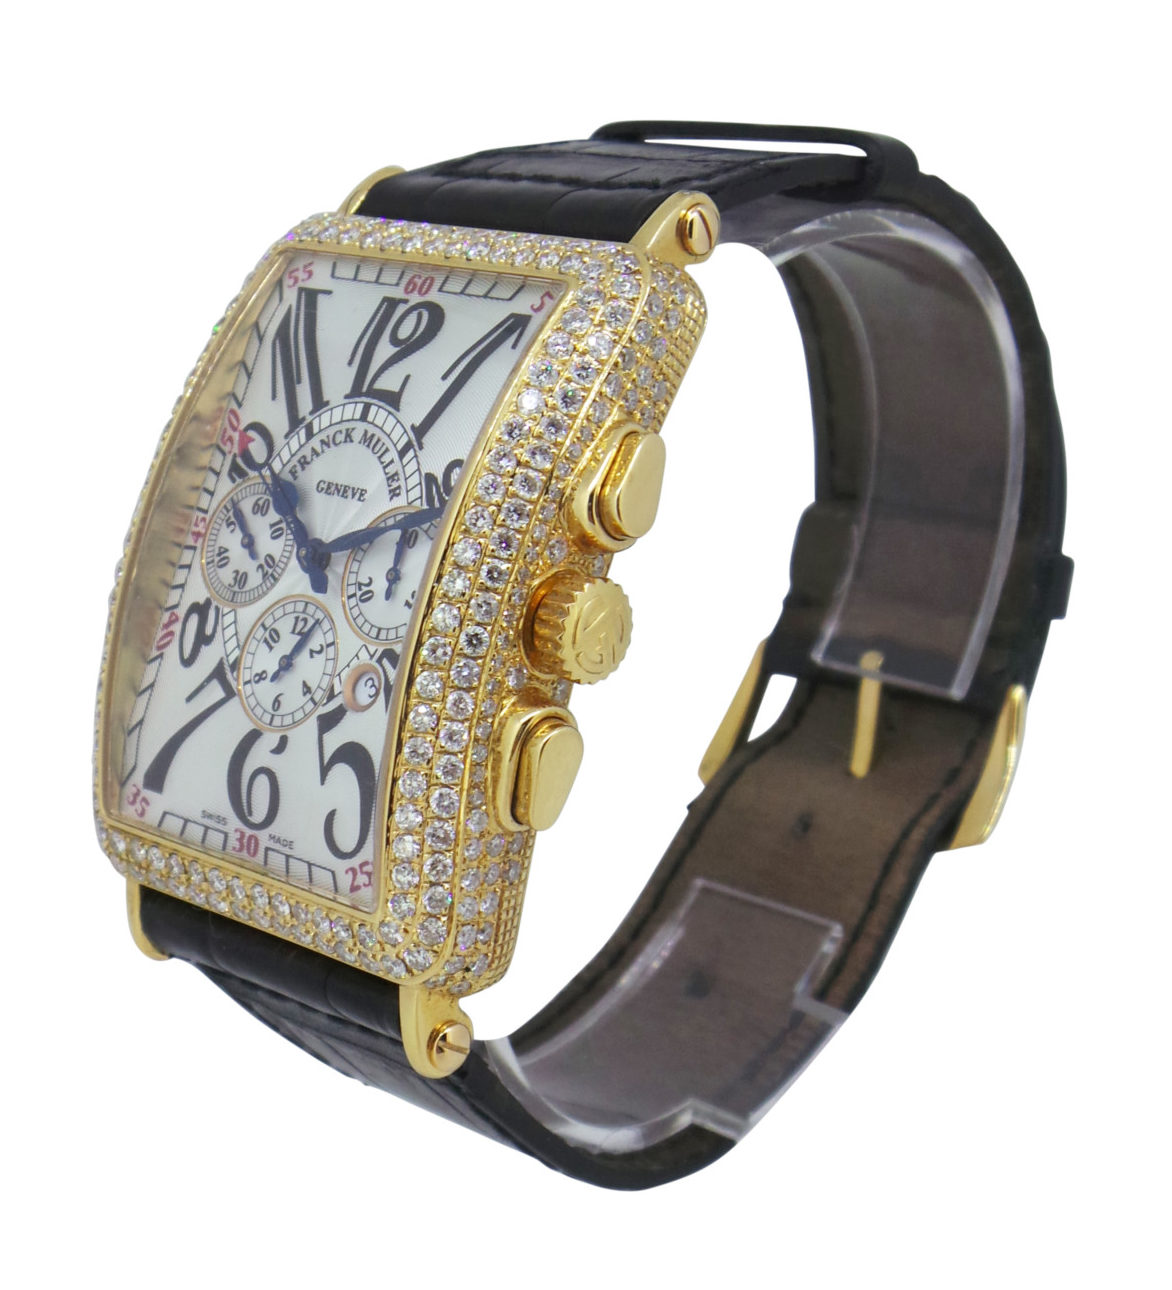 Franck Muller Model: Long Island Model Number: 95 Movement Type: ETA 2094 Automatic (Chronograph) Bracelet: Black leather strap Case: 18ct yellow gold, all diamond set Dial: Silver Bezel Size: 32x45mm Box: No Papers: No Estimated NRP: £11,100.